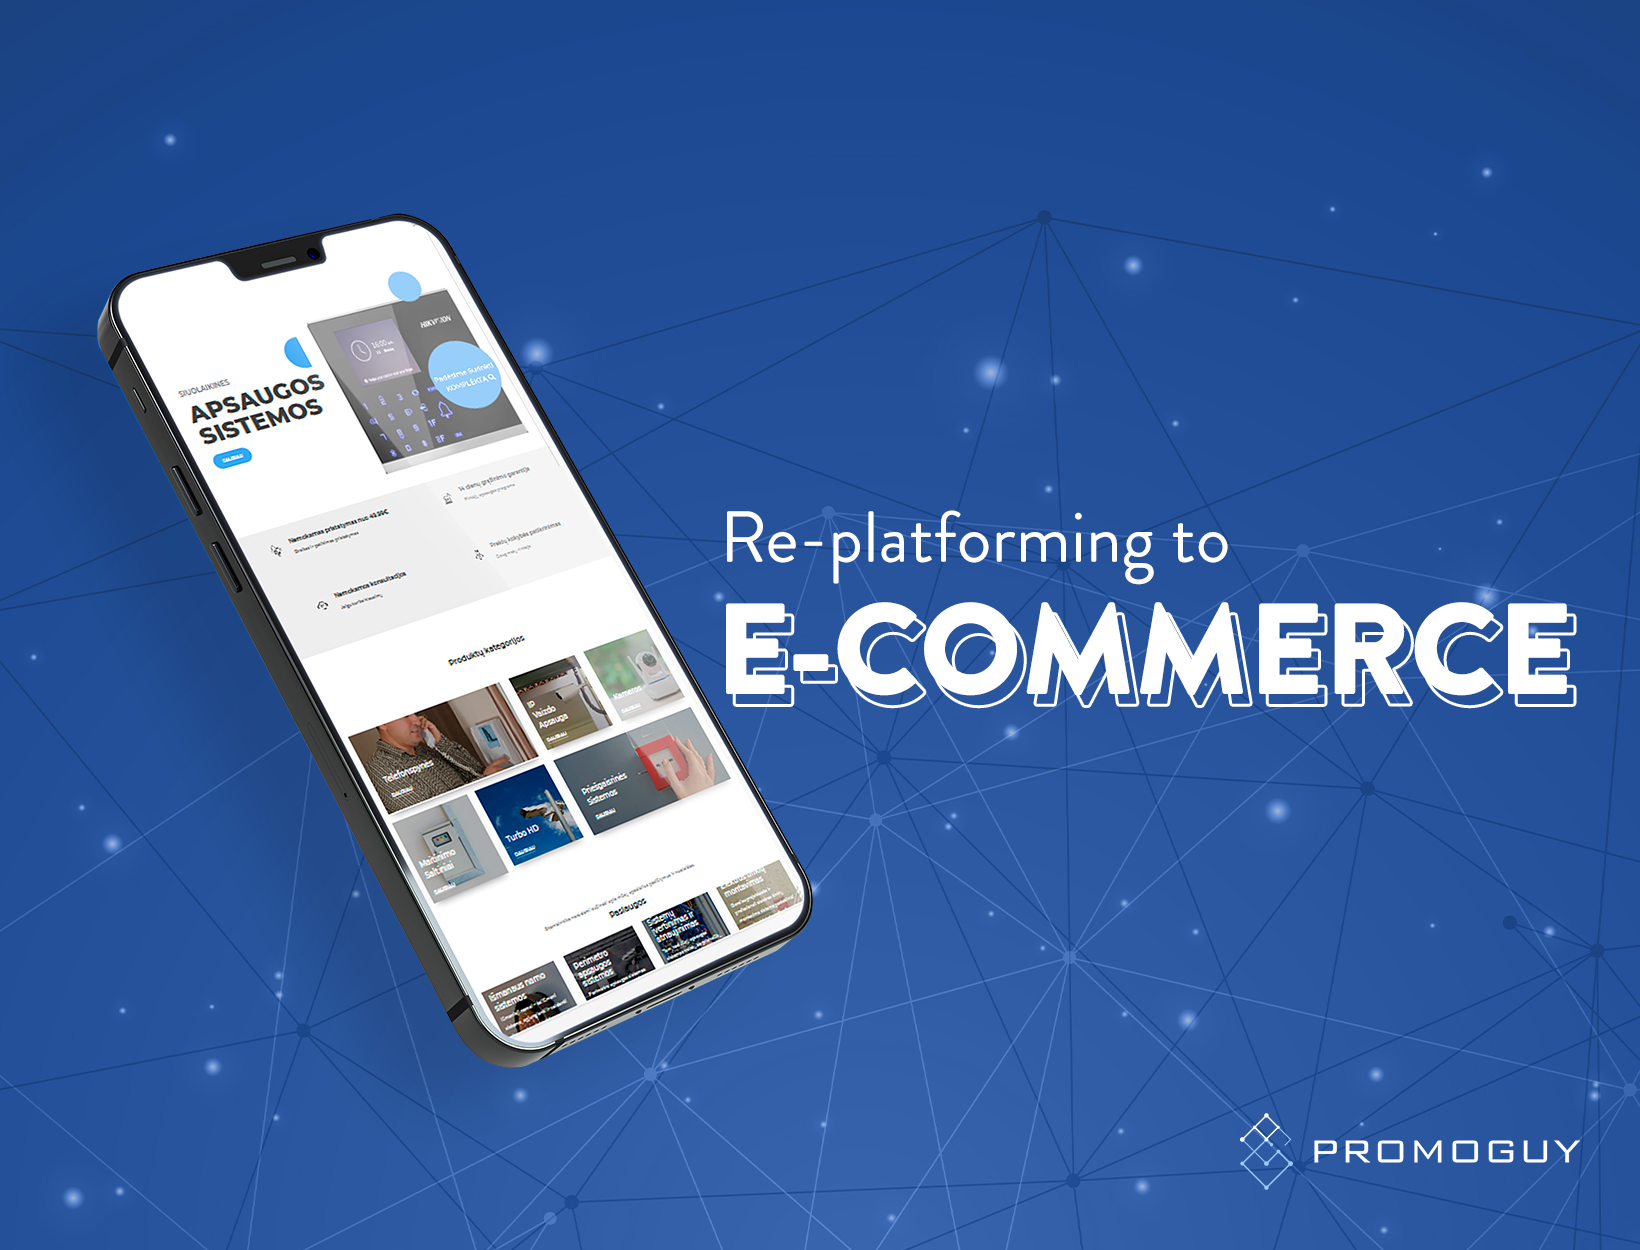 Re-platforming to Ecommerce - E-commerce